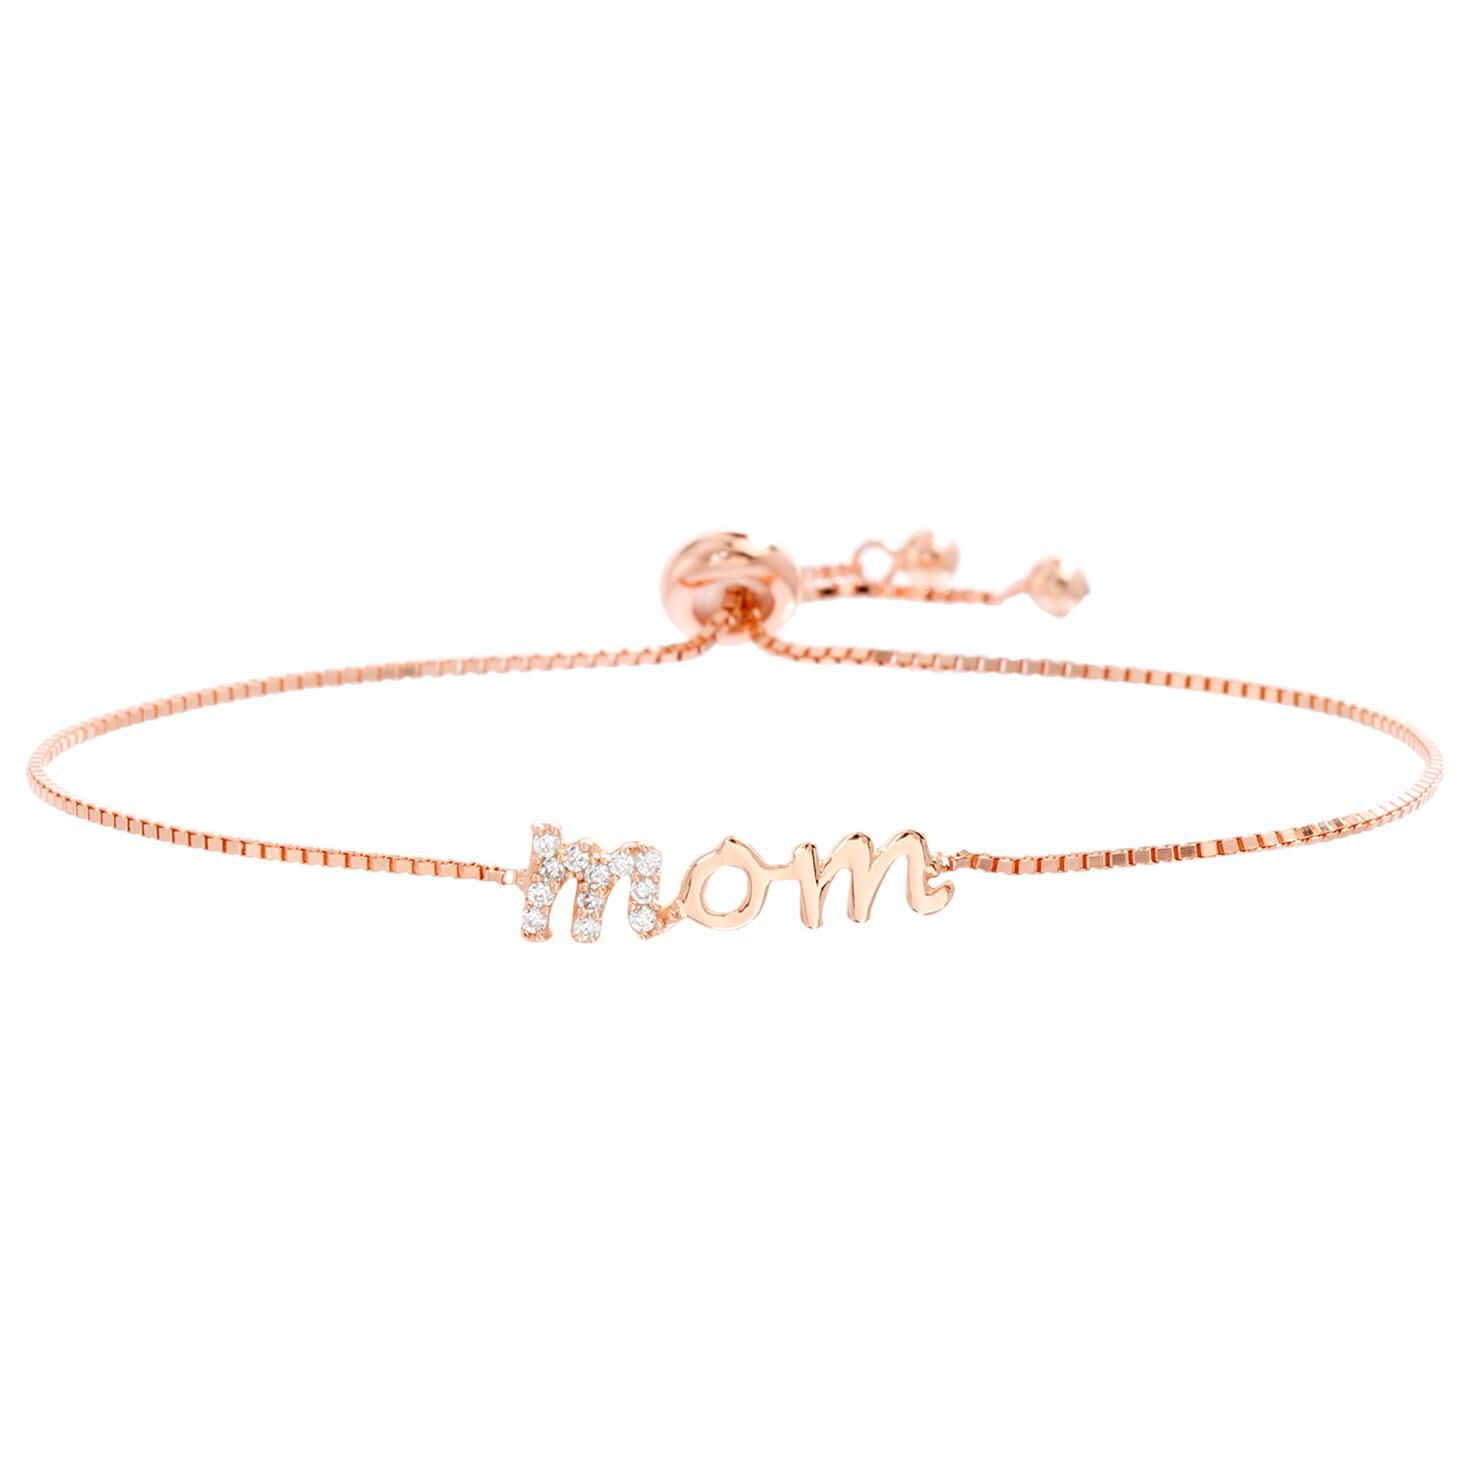 Mom Bolo Bracelet in Rose GoldPlated Sterling Silver Jewelry